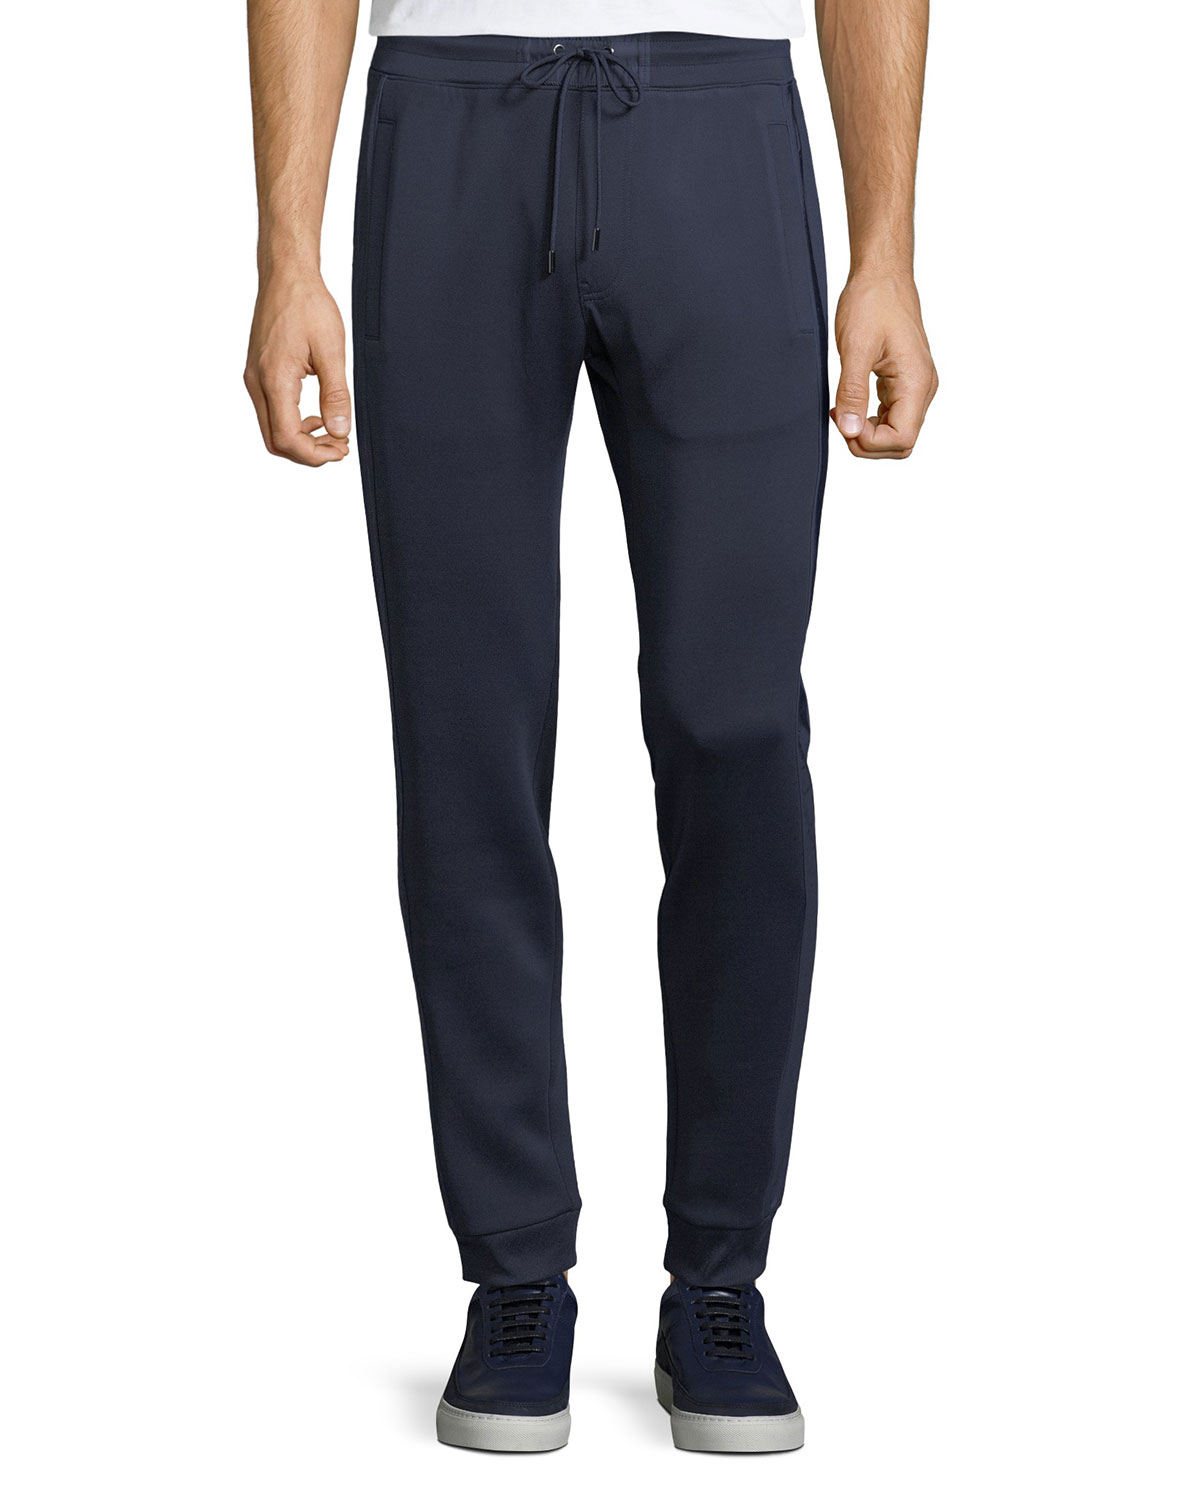 Men's Woven-Trim Sporty Scuba Jogger Pants